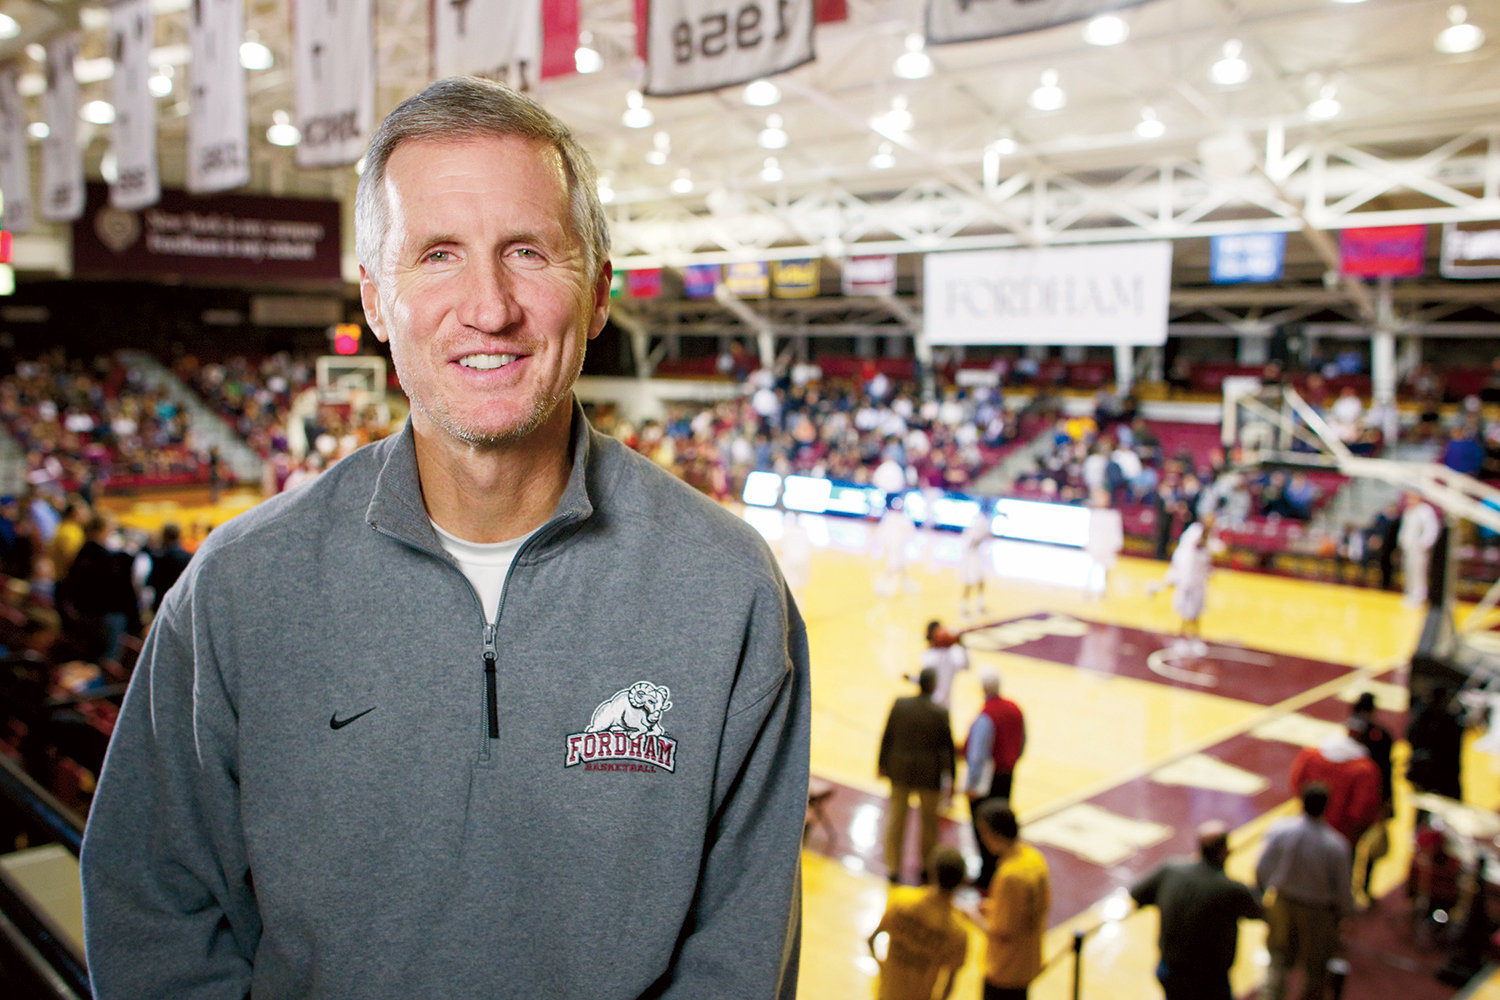 CALL TO HALL—Mike Breen, a 2020 winner of the Curt Gowdy Media Award for the Naismith Memorial Basketball Hall of Fame in Springfield, Mass., smiles at Rose Hill Gymnasium during a visit to his alma mater, Fordham University.